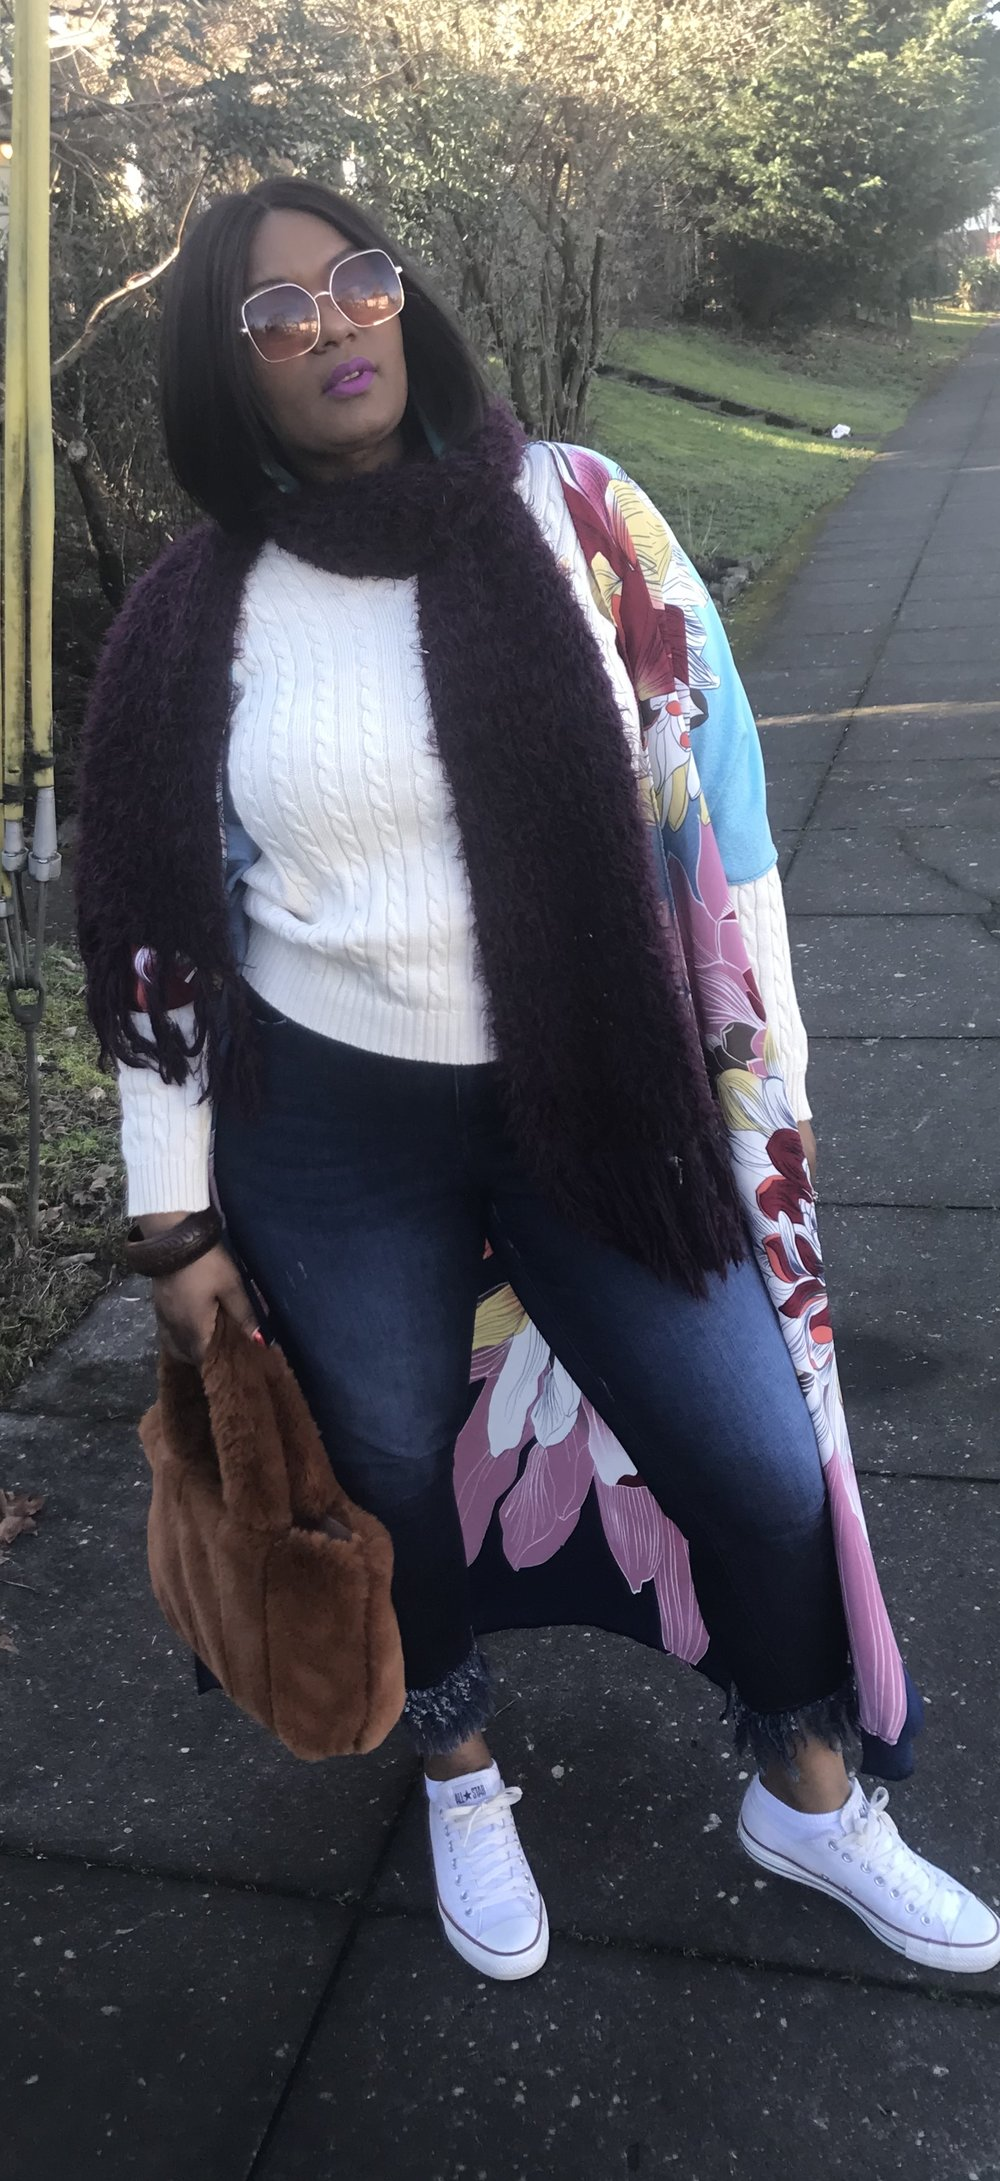 Extend your wardrobe - Add a medium weight sweater, warm scarf to a fun pair of jeans.  Jeans with ankle interest are on trend.  My go to for medium weight sweaters is Lauren by Ralph Lauren. This jeans are from Lane Bryant you can find them here